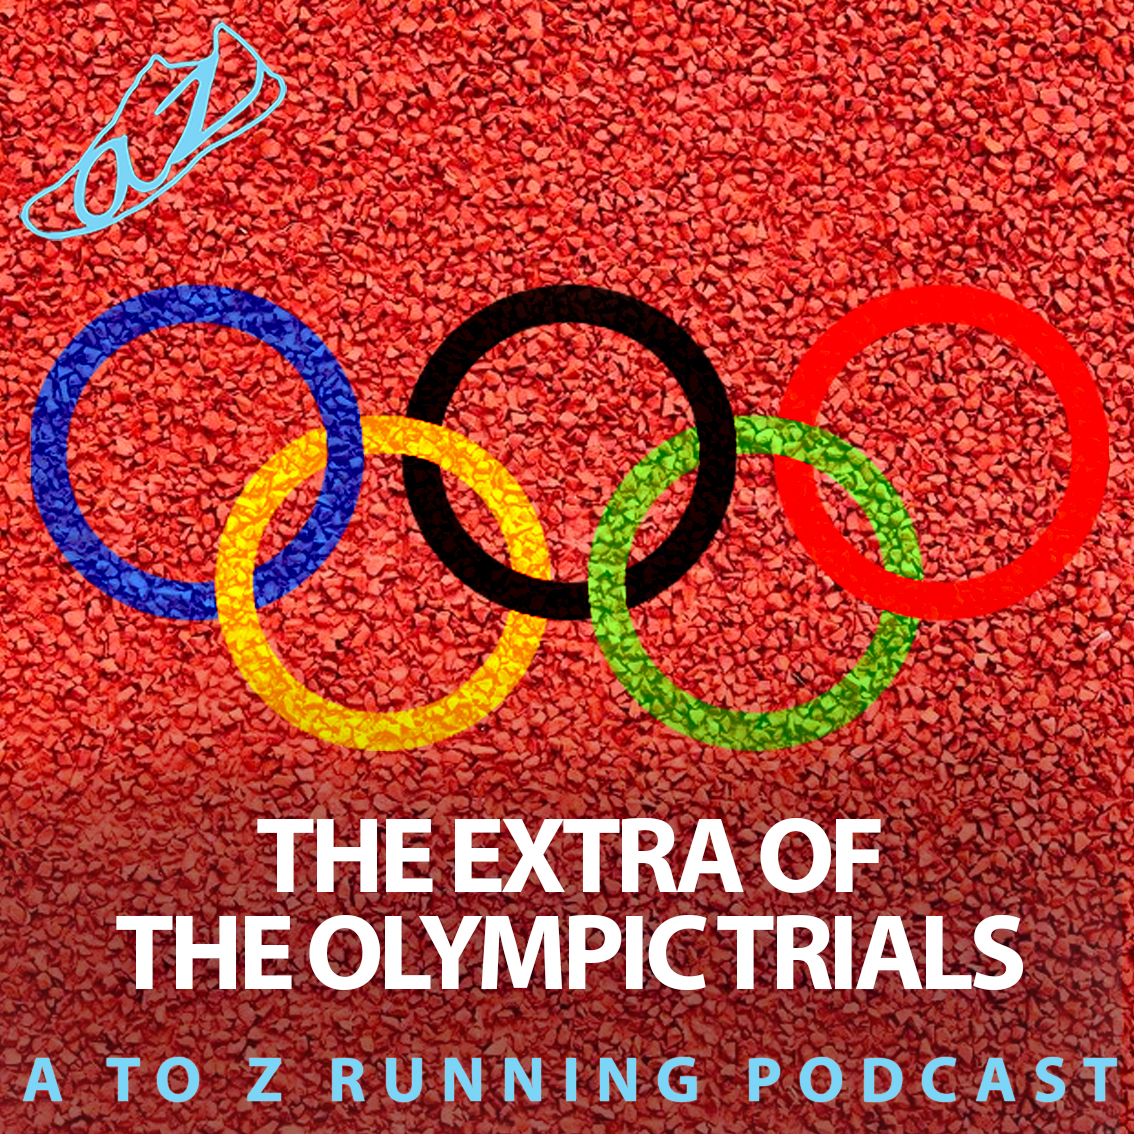 The Extra of the Olympic Trials